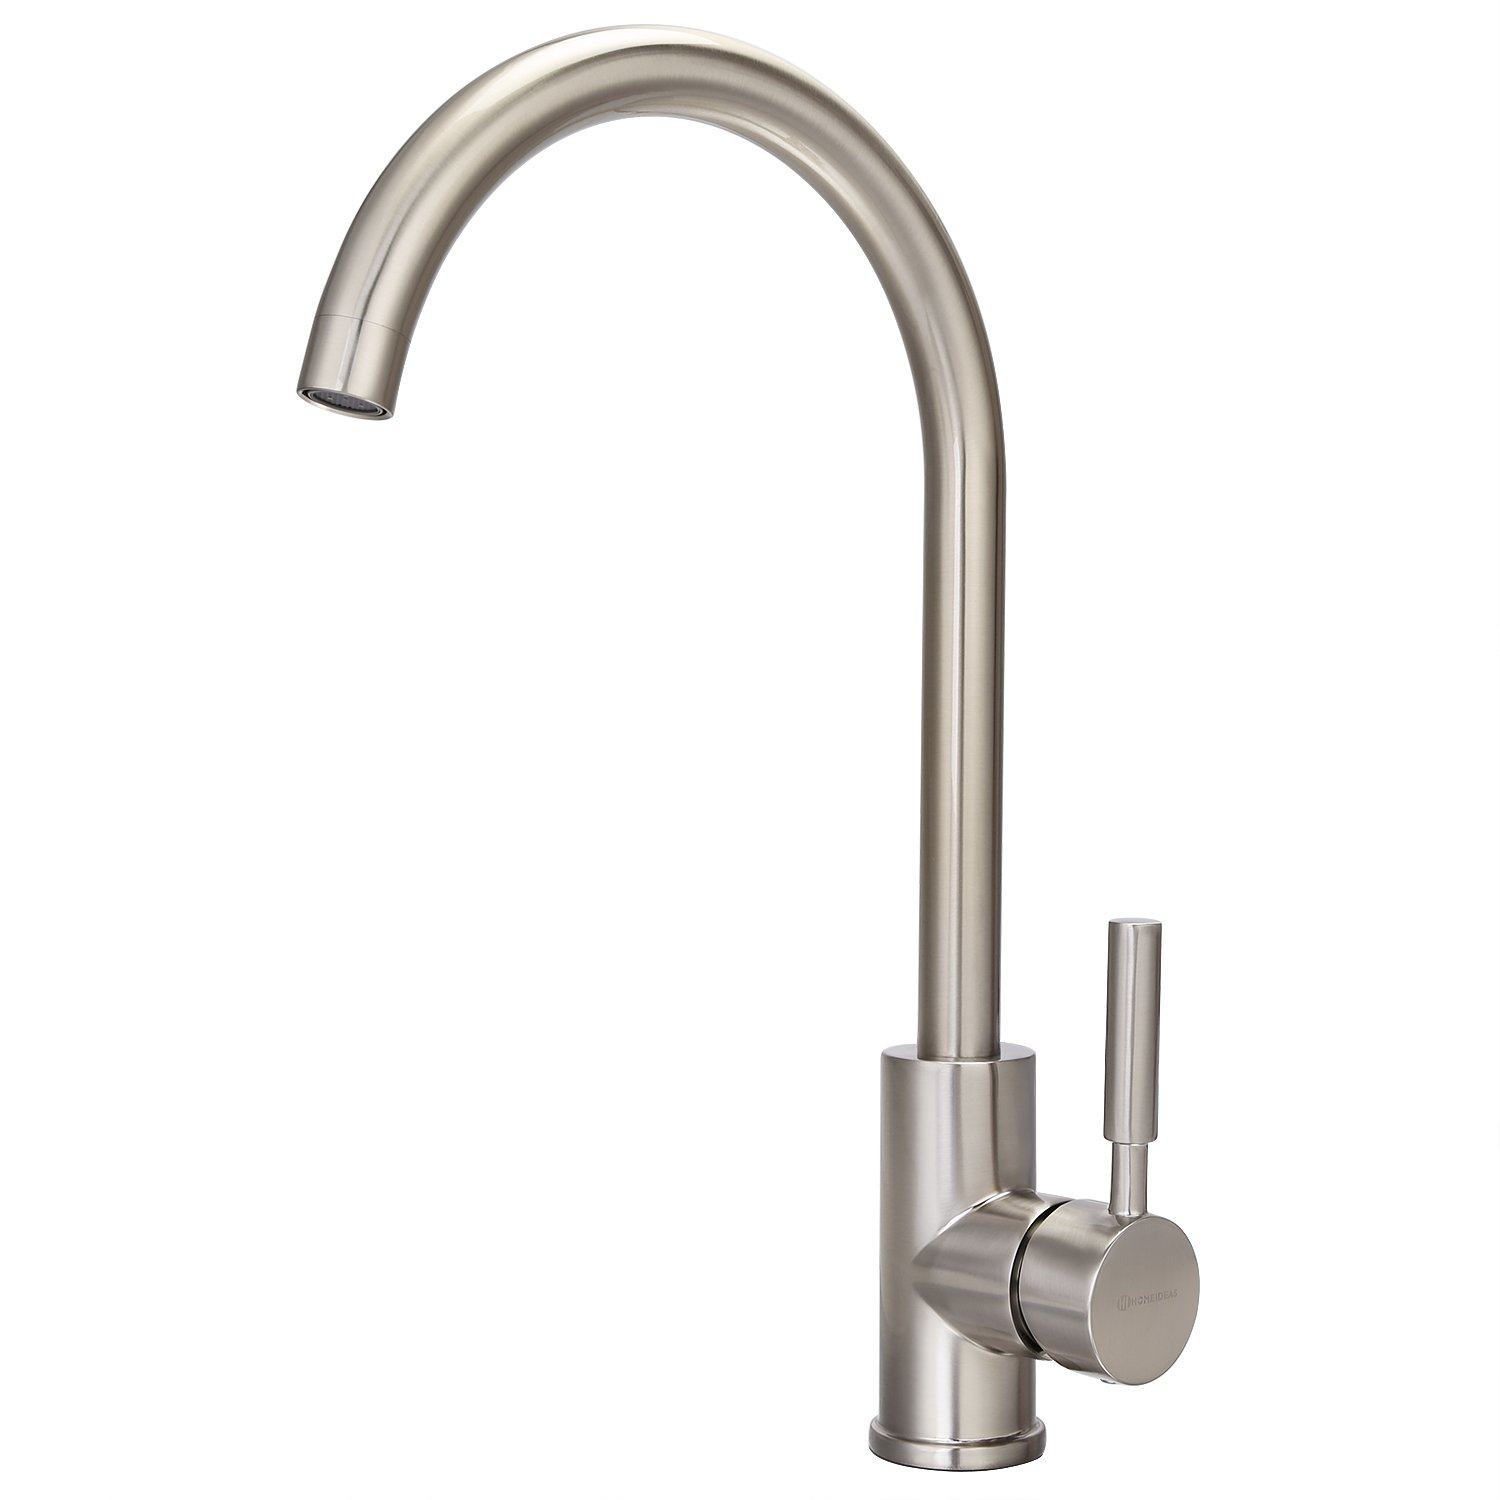 HOMEIDEAS Kitchen Sink Faucet, Gooseneck Hot and Cold Single Handle Water Faucets 360 Degree Swivel Brushed Nickel Finished, Food Grade 304 Stainless Steel